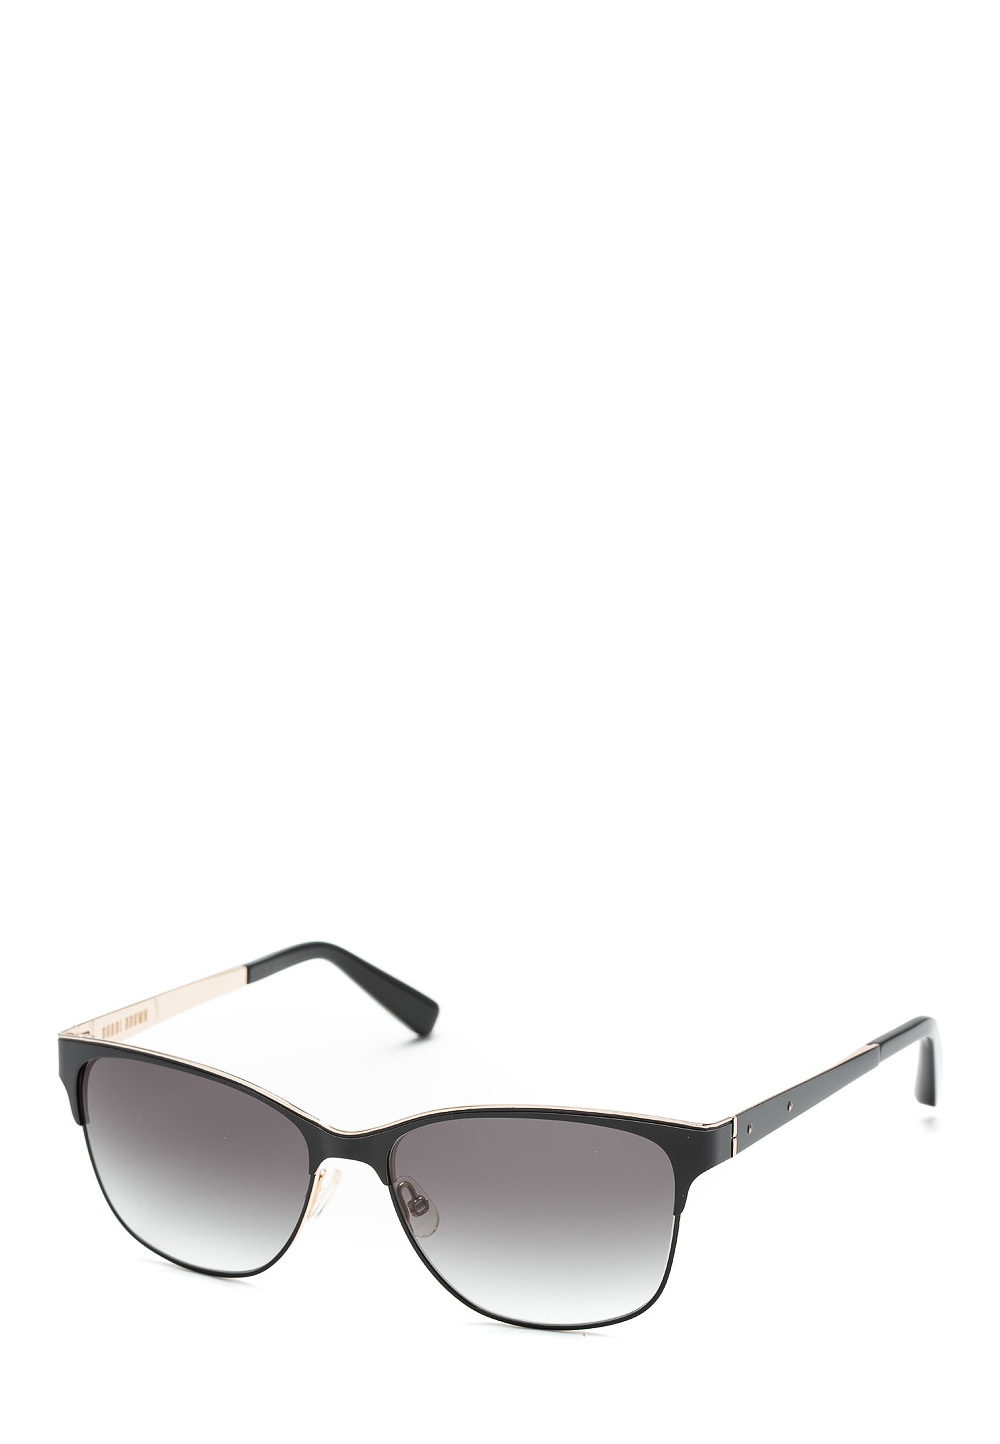 Bobbi Brown Sonnenbrille The Ruby, UV 400, schwarz